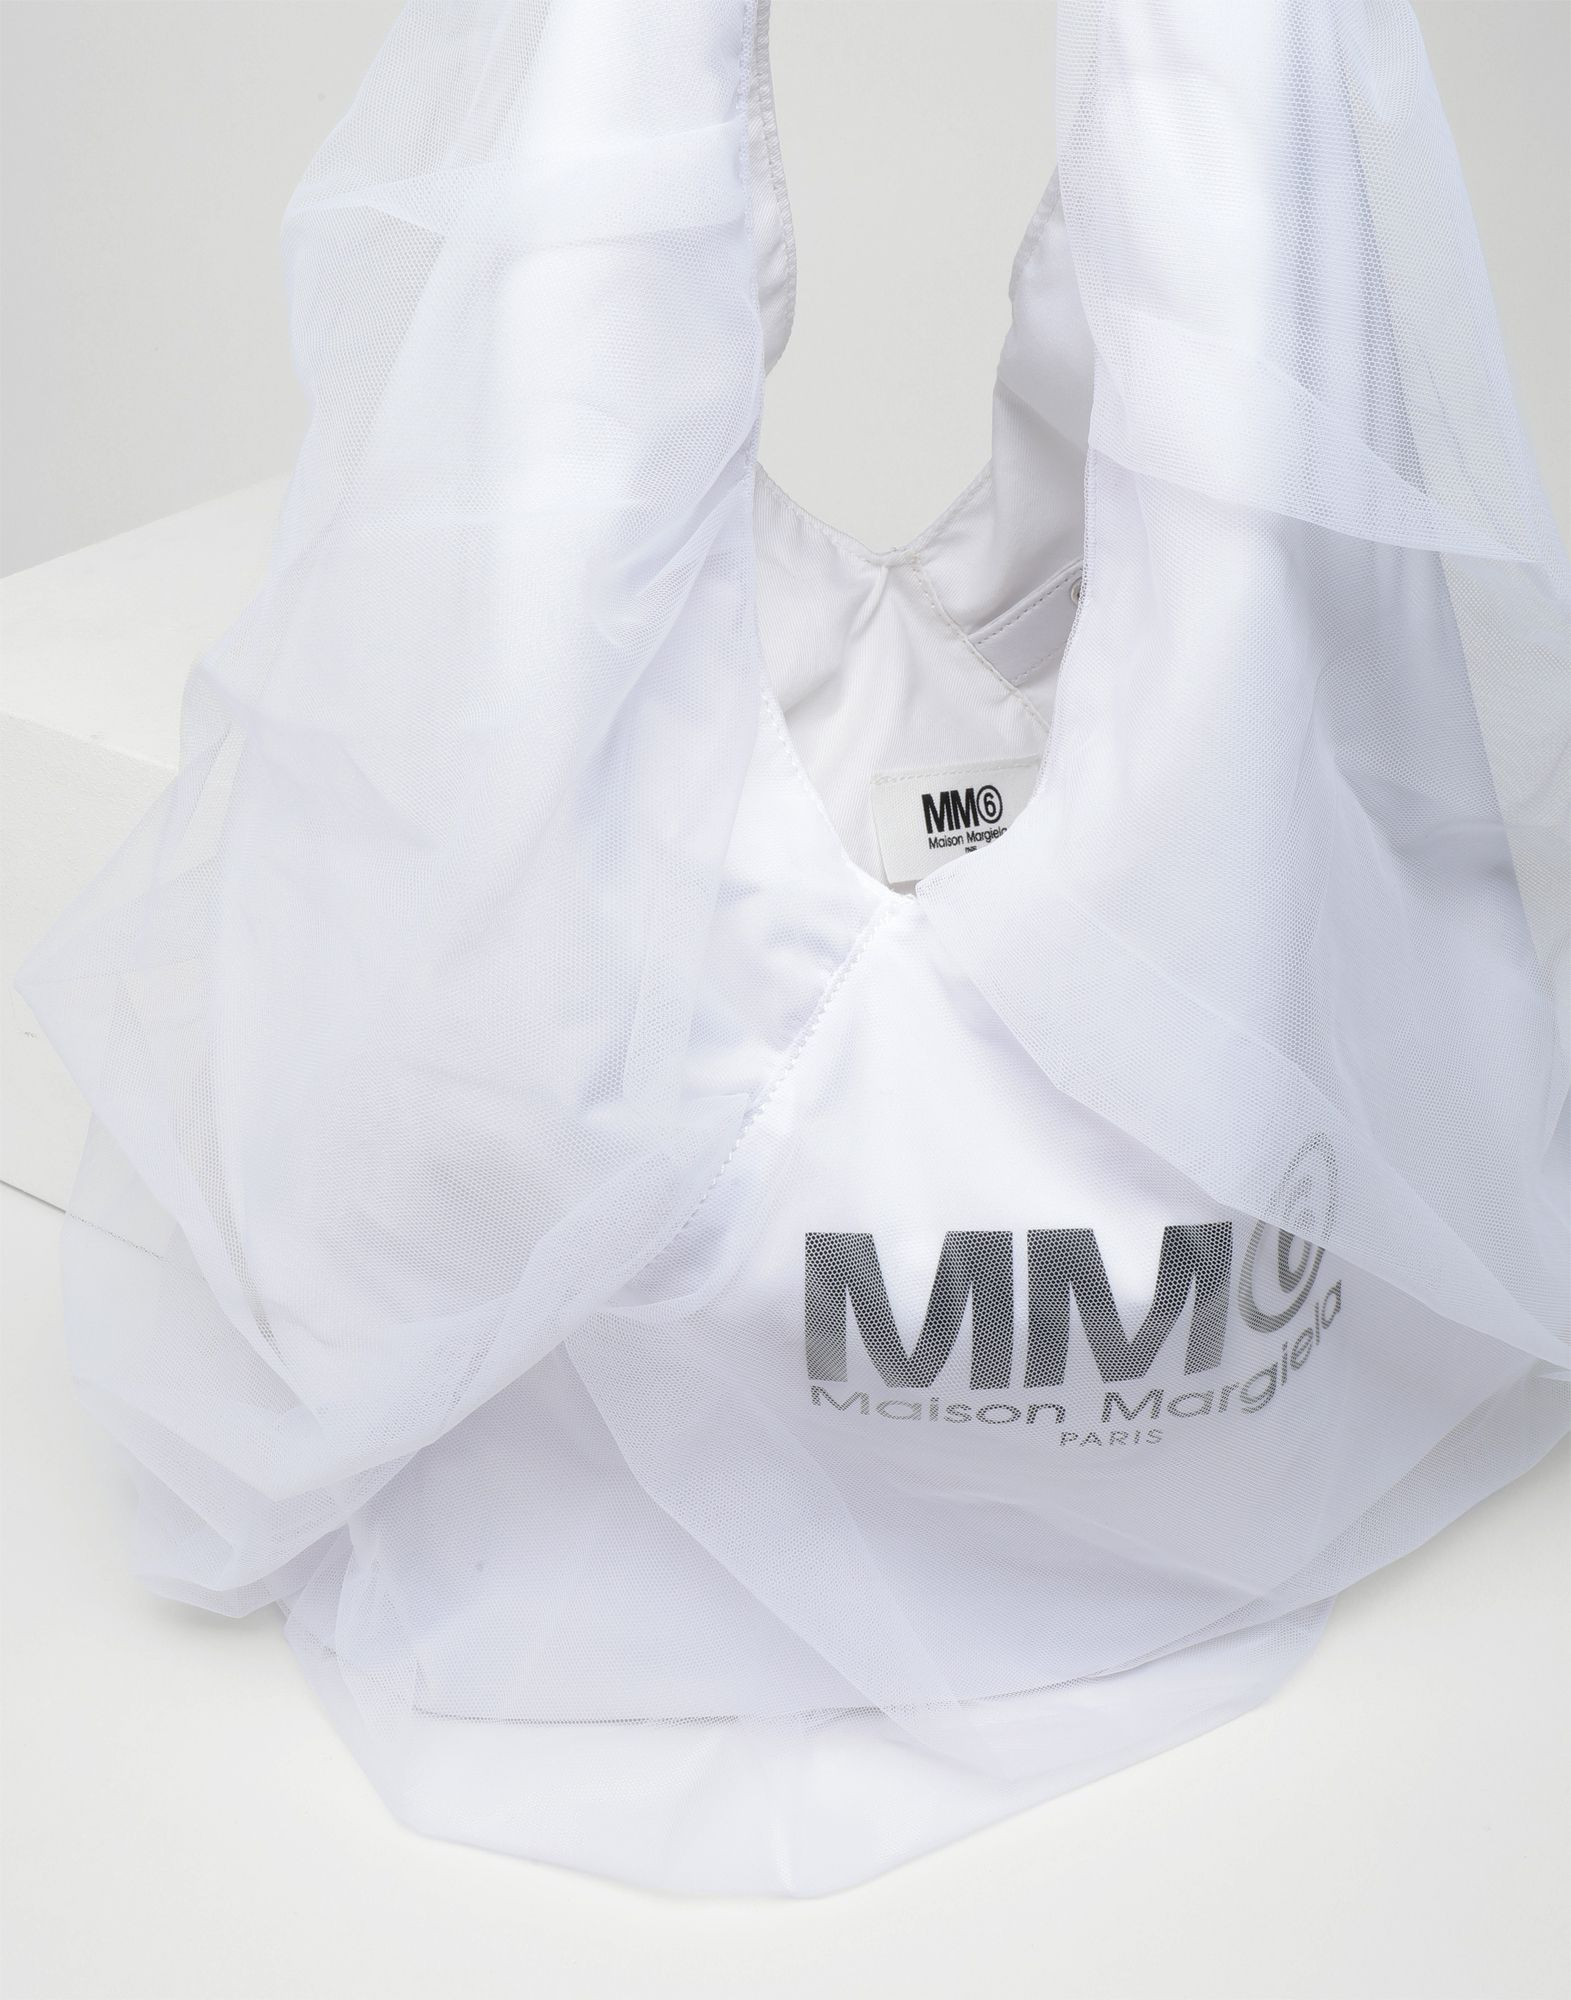 MM6 MAISON MARGIELA Japanese medium tulle bag Handbag Woman a